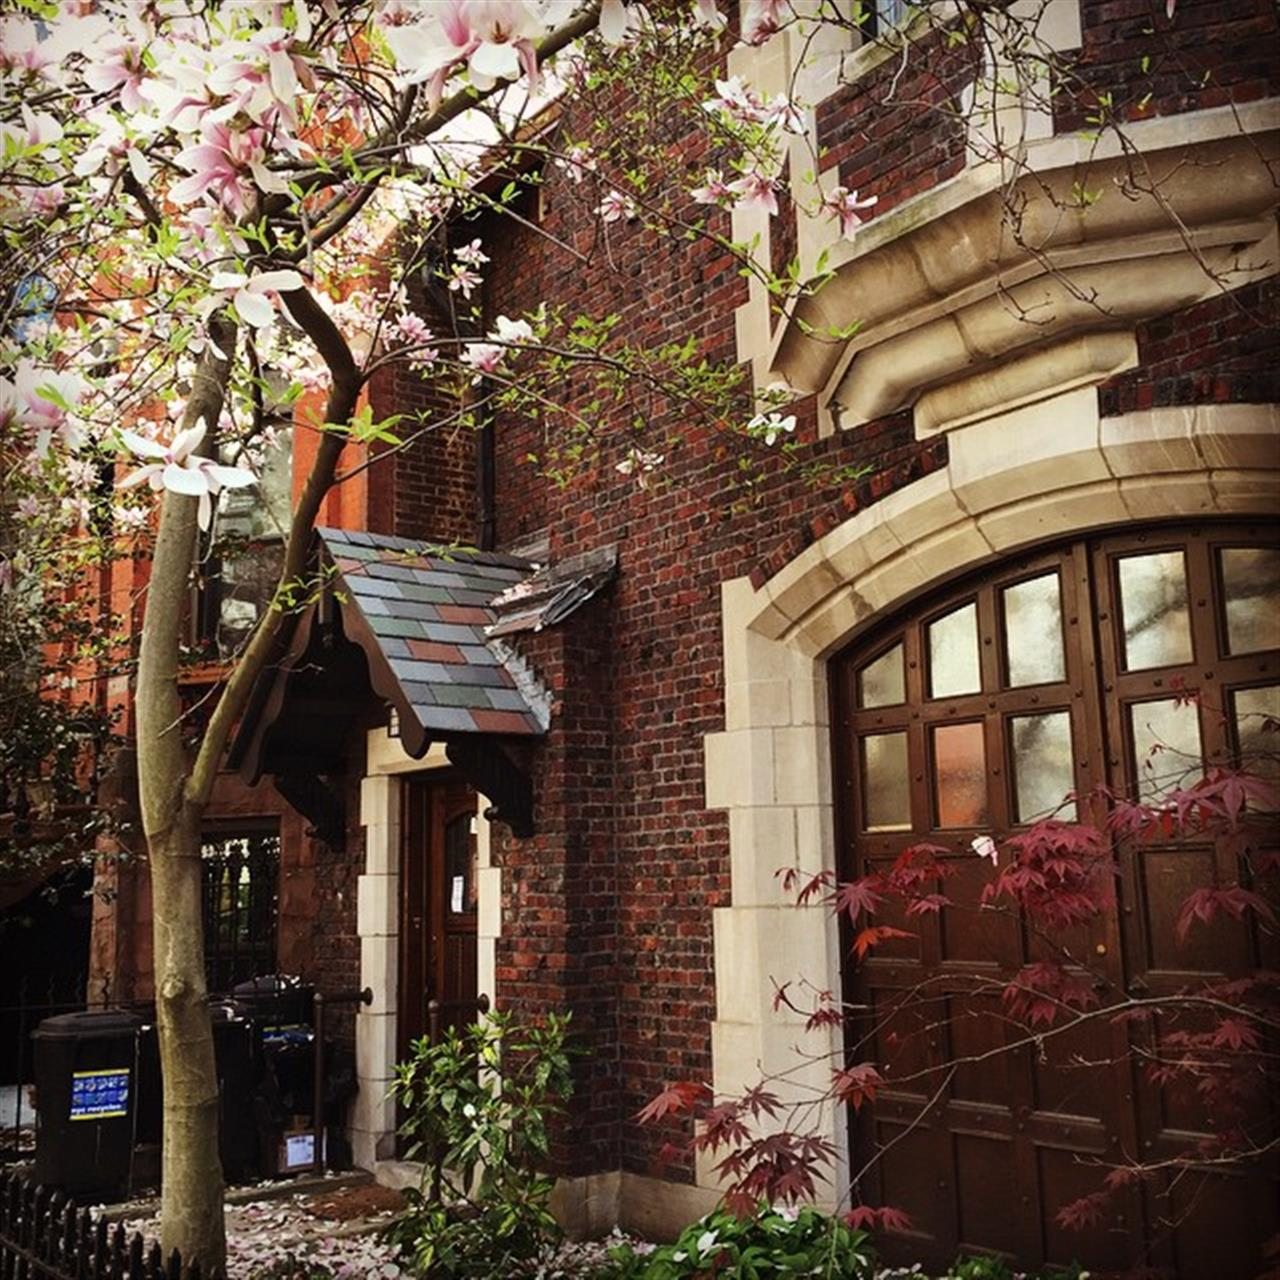 Magnolias in #parkslope #ExploreYourHood #LeadingRElocal